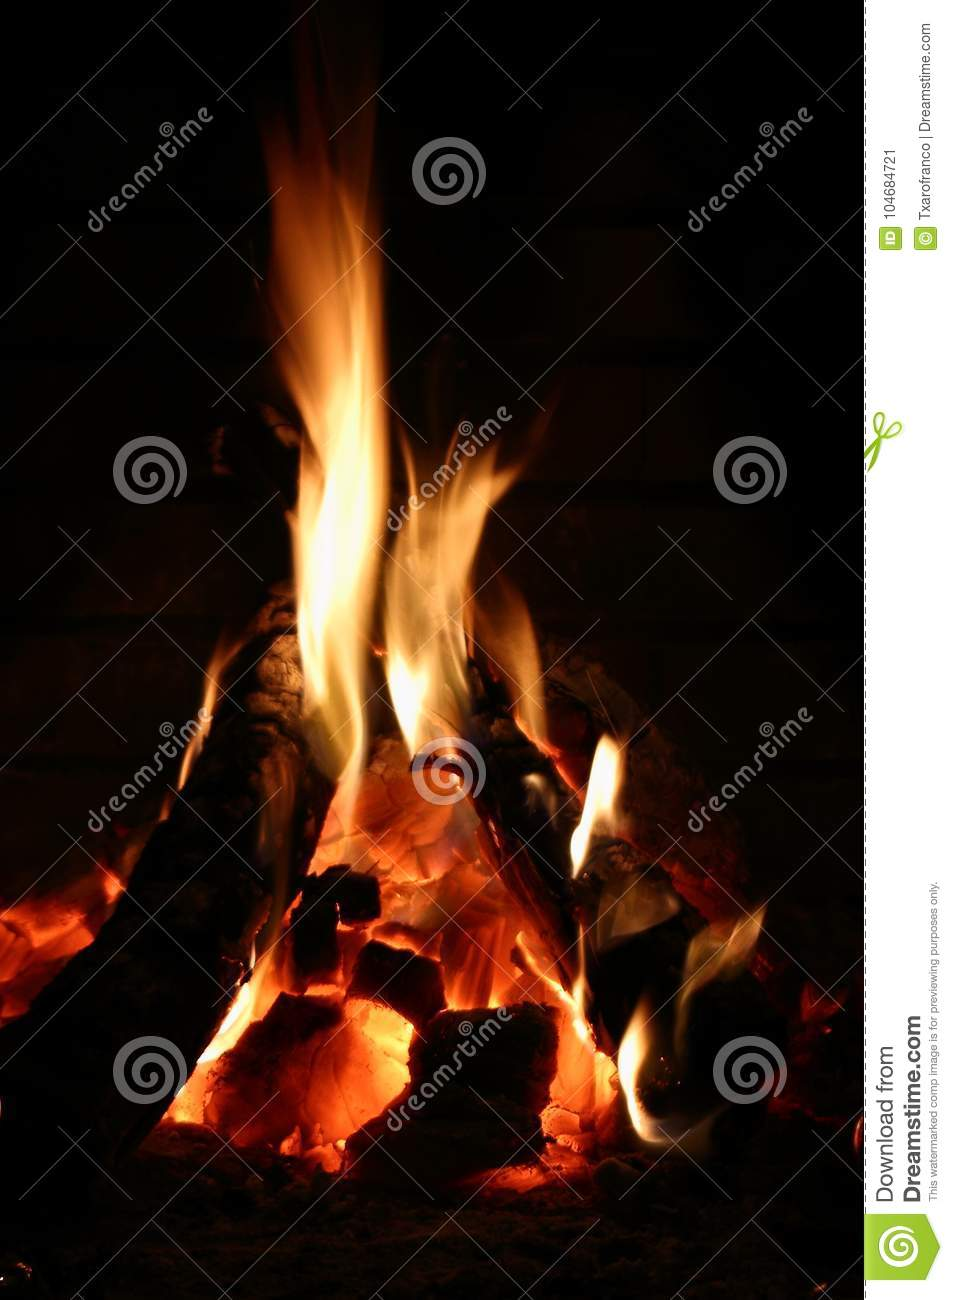 wallpaper fire fireplace black background brick strong contrast colors brown orange image appropriate 104684721